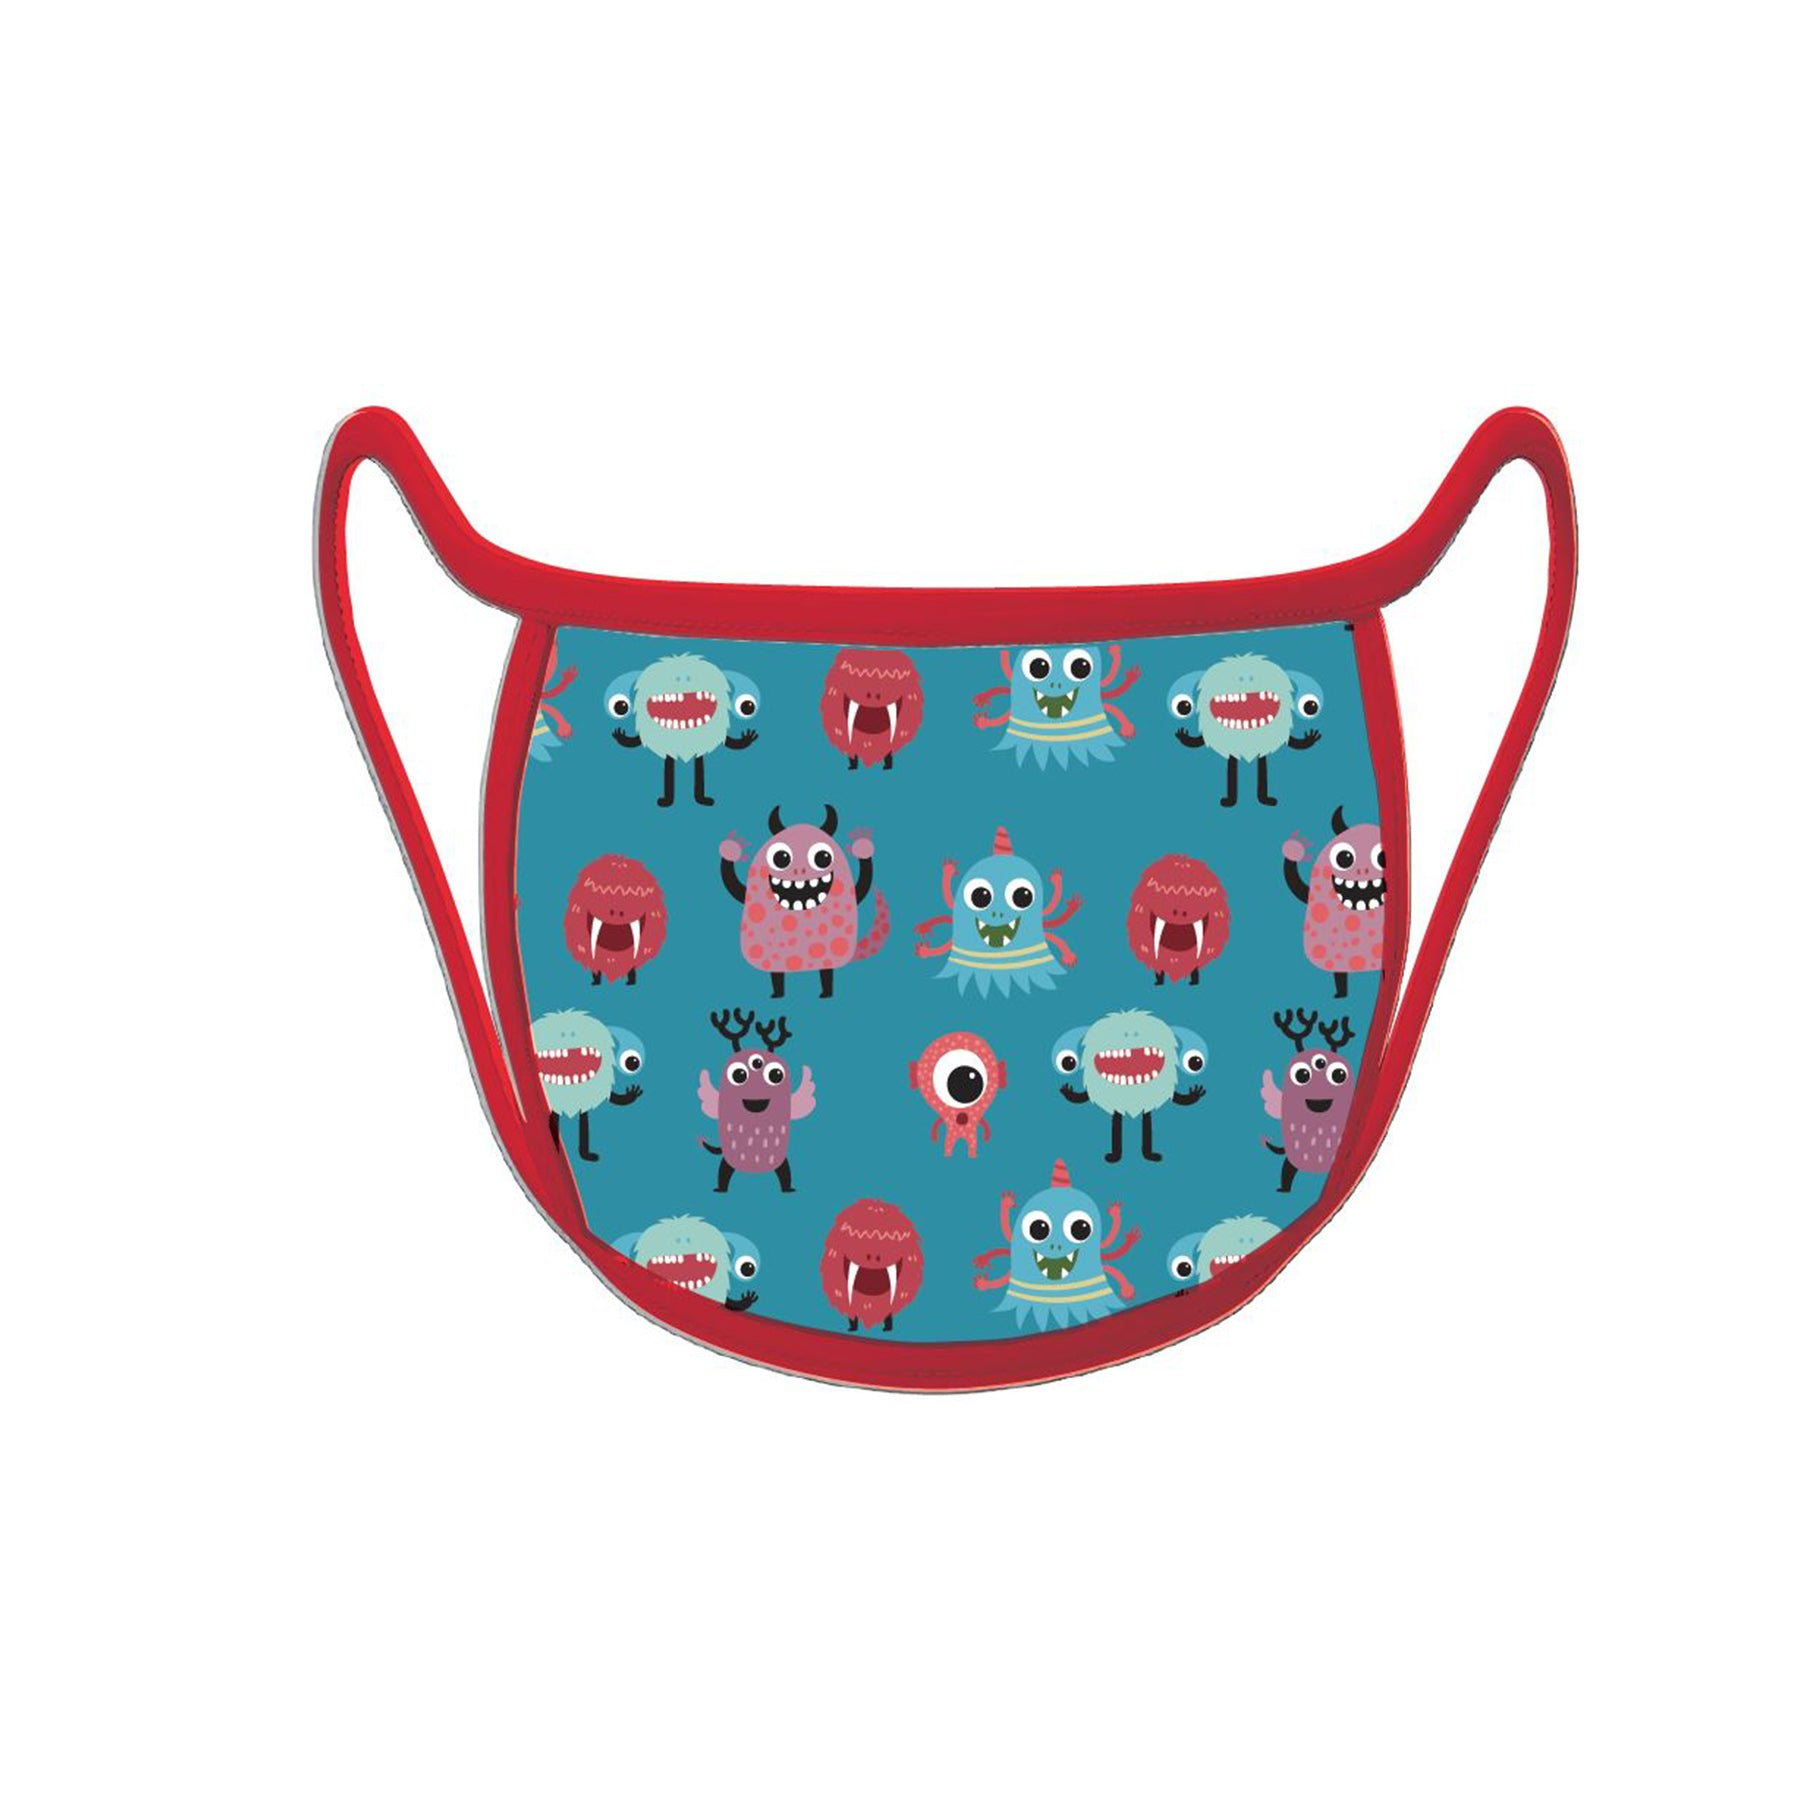 Re-useable Handmade Cloth Face Covering Little Monsters Design